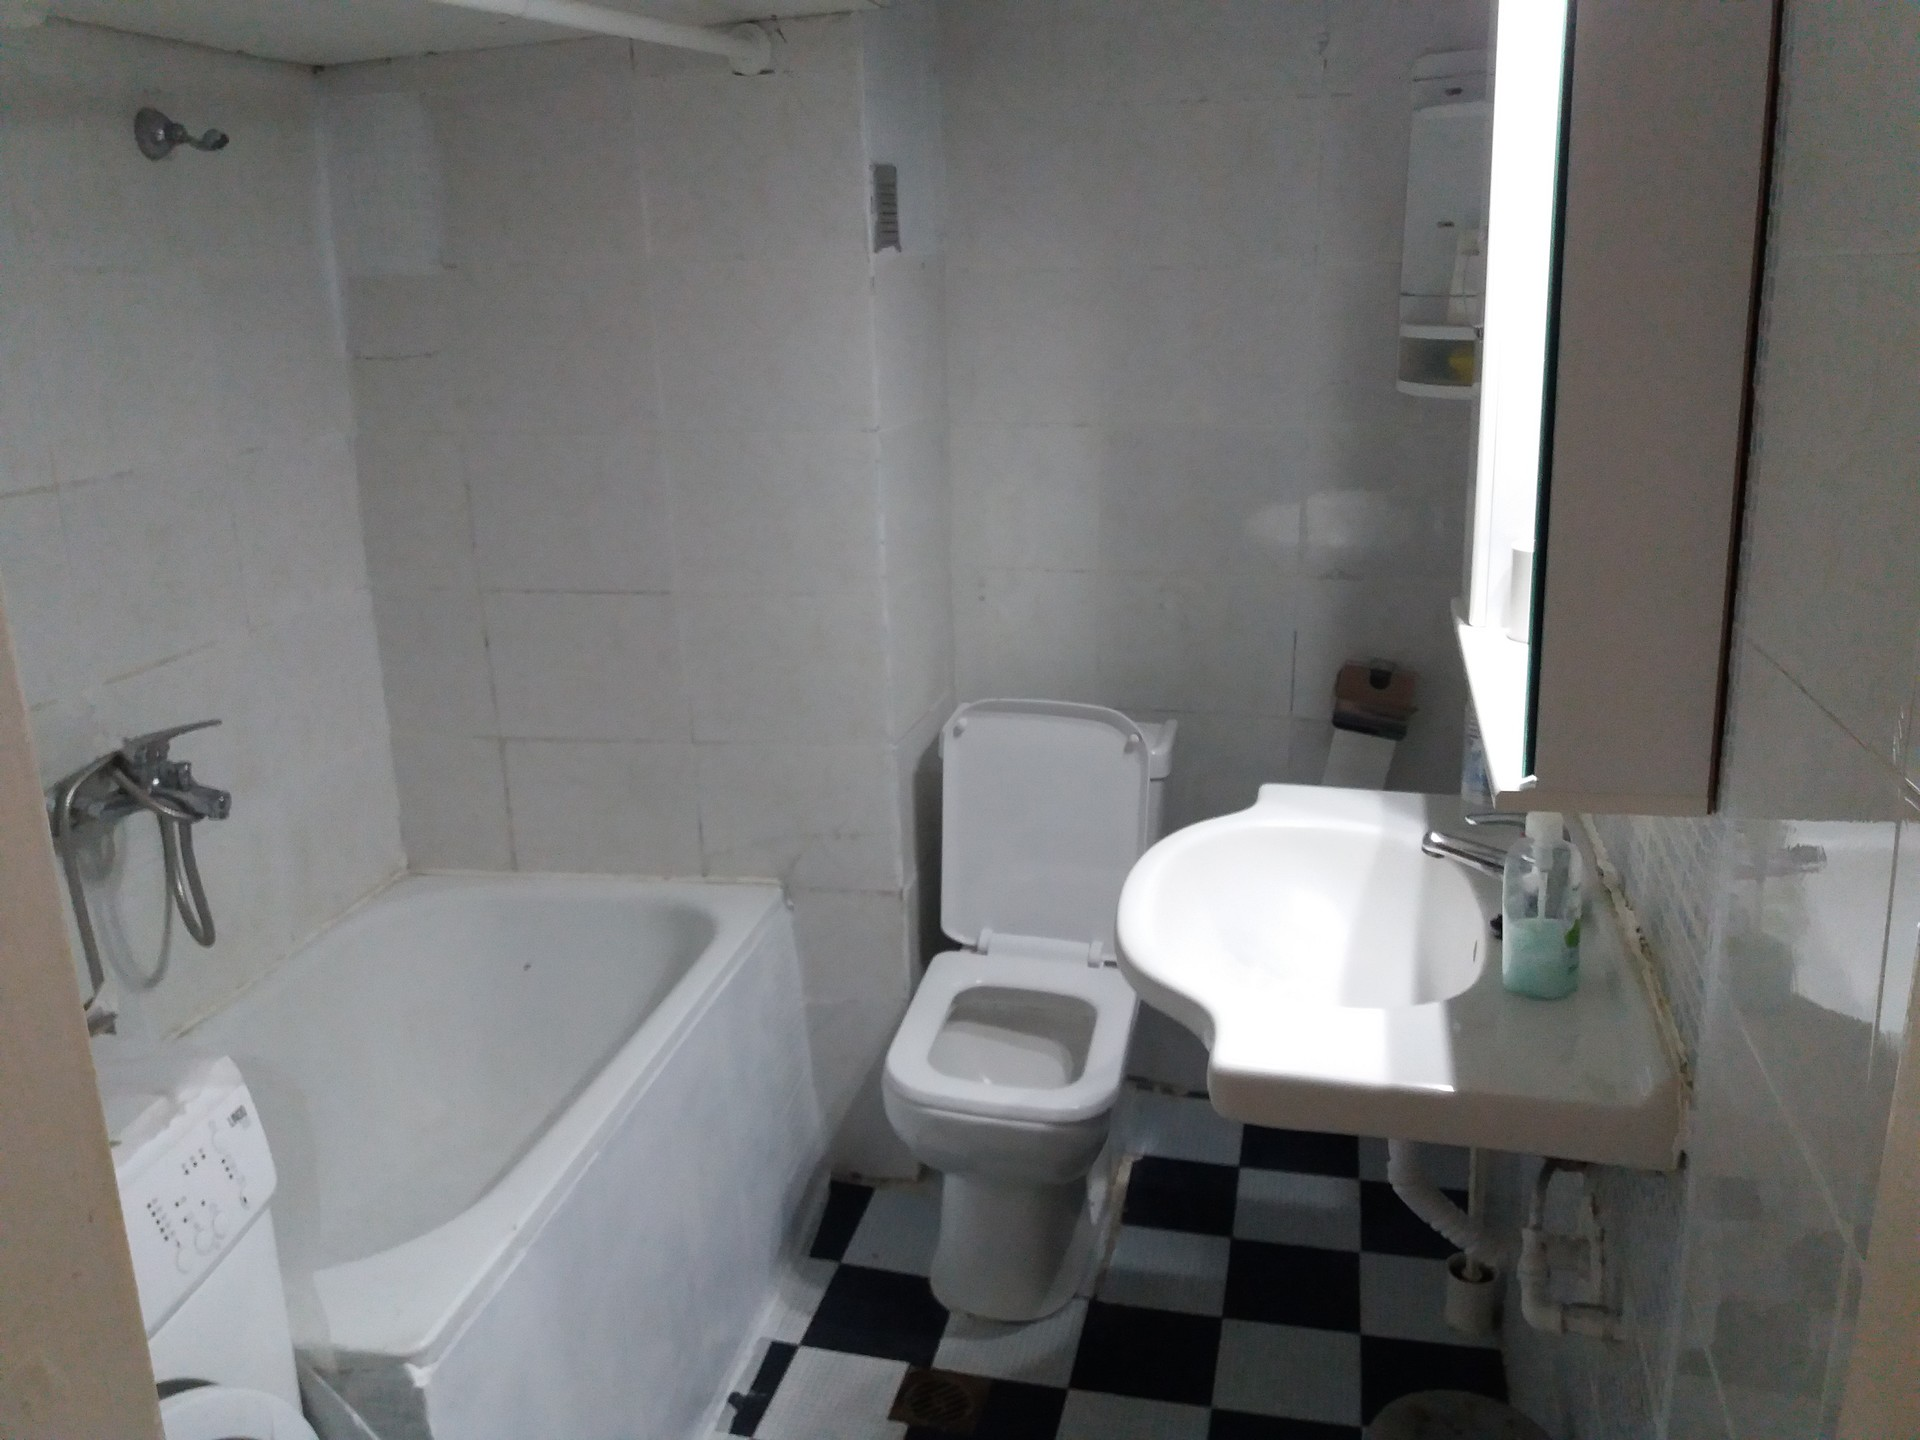 Thessaloniki centre at Agios Dimitrios. For rent room in shared